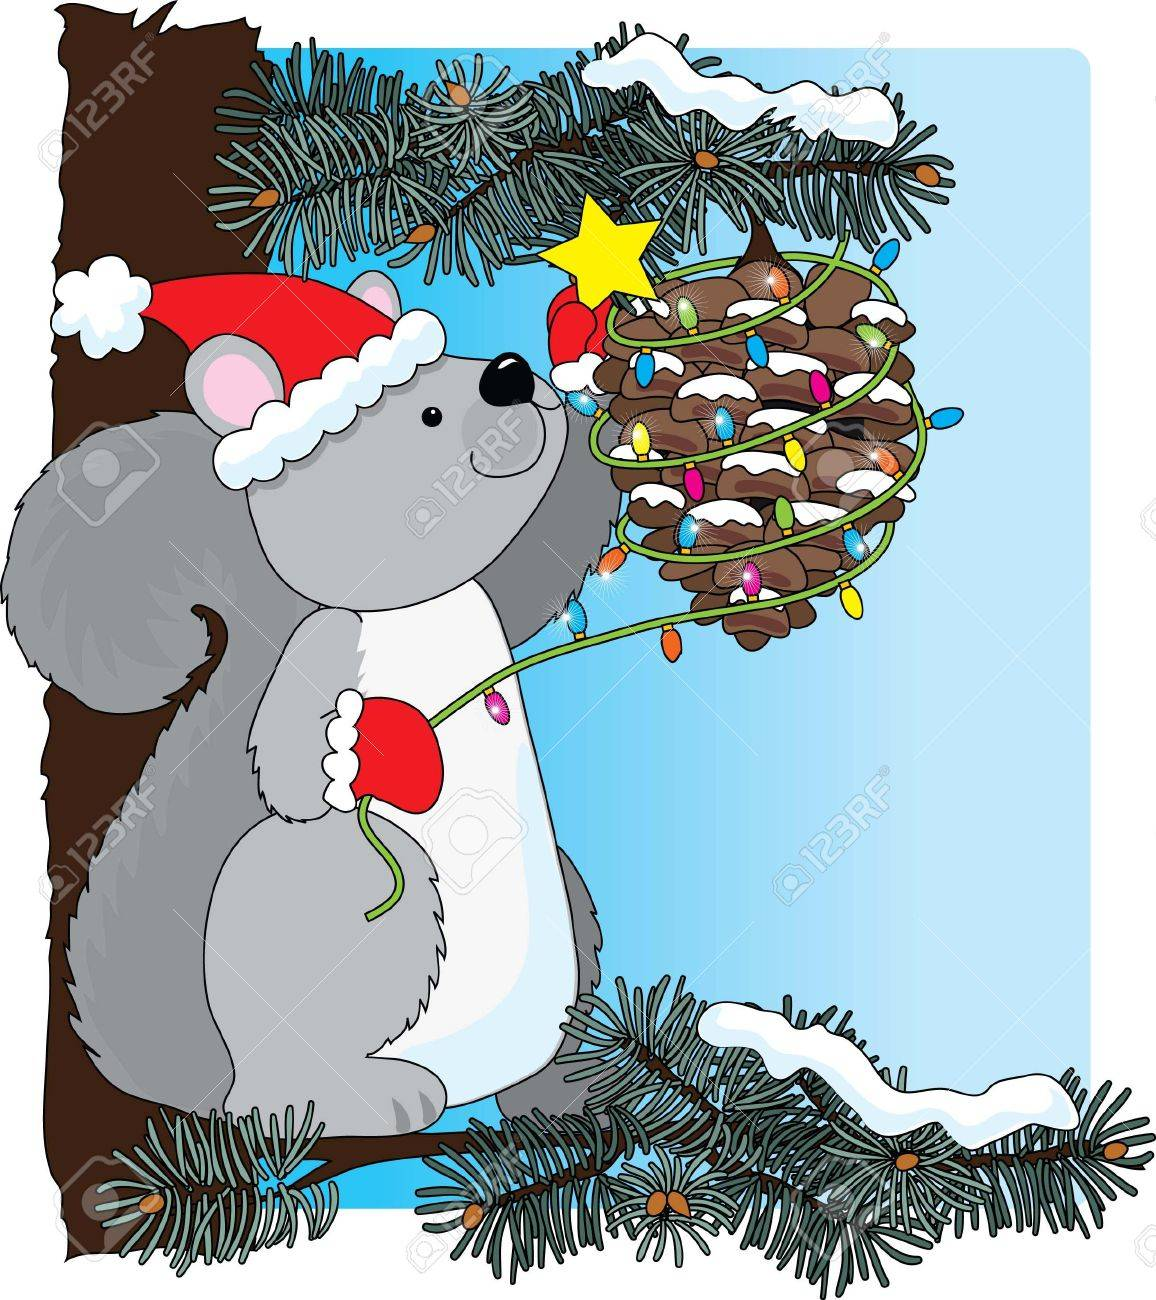 A squirrel decorating a pinecone for Christmas Stock Vector - 2189387